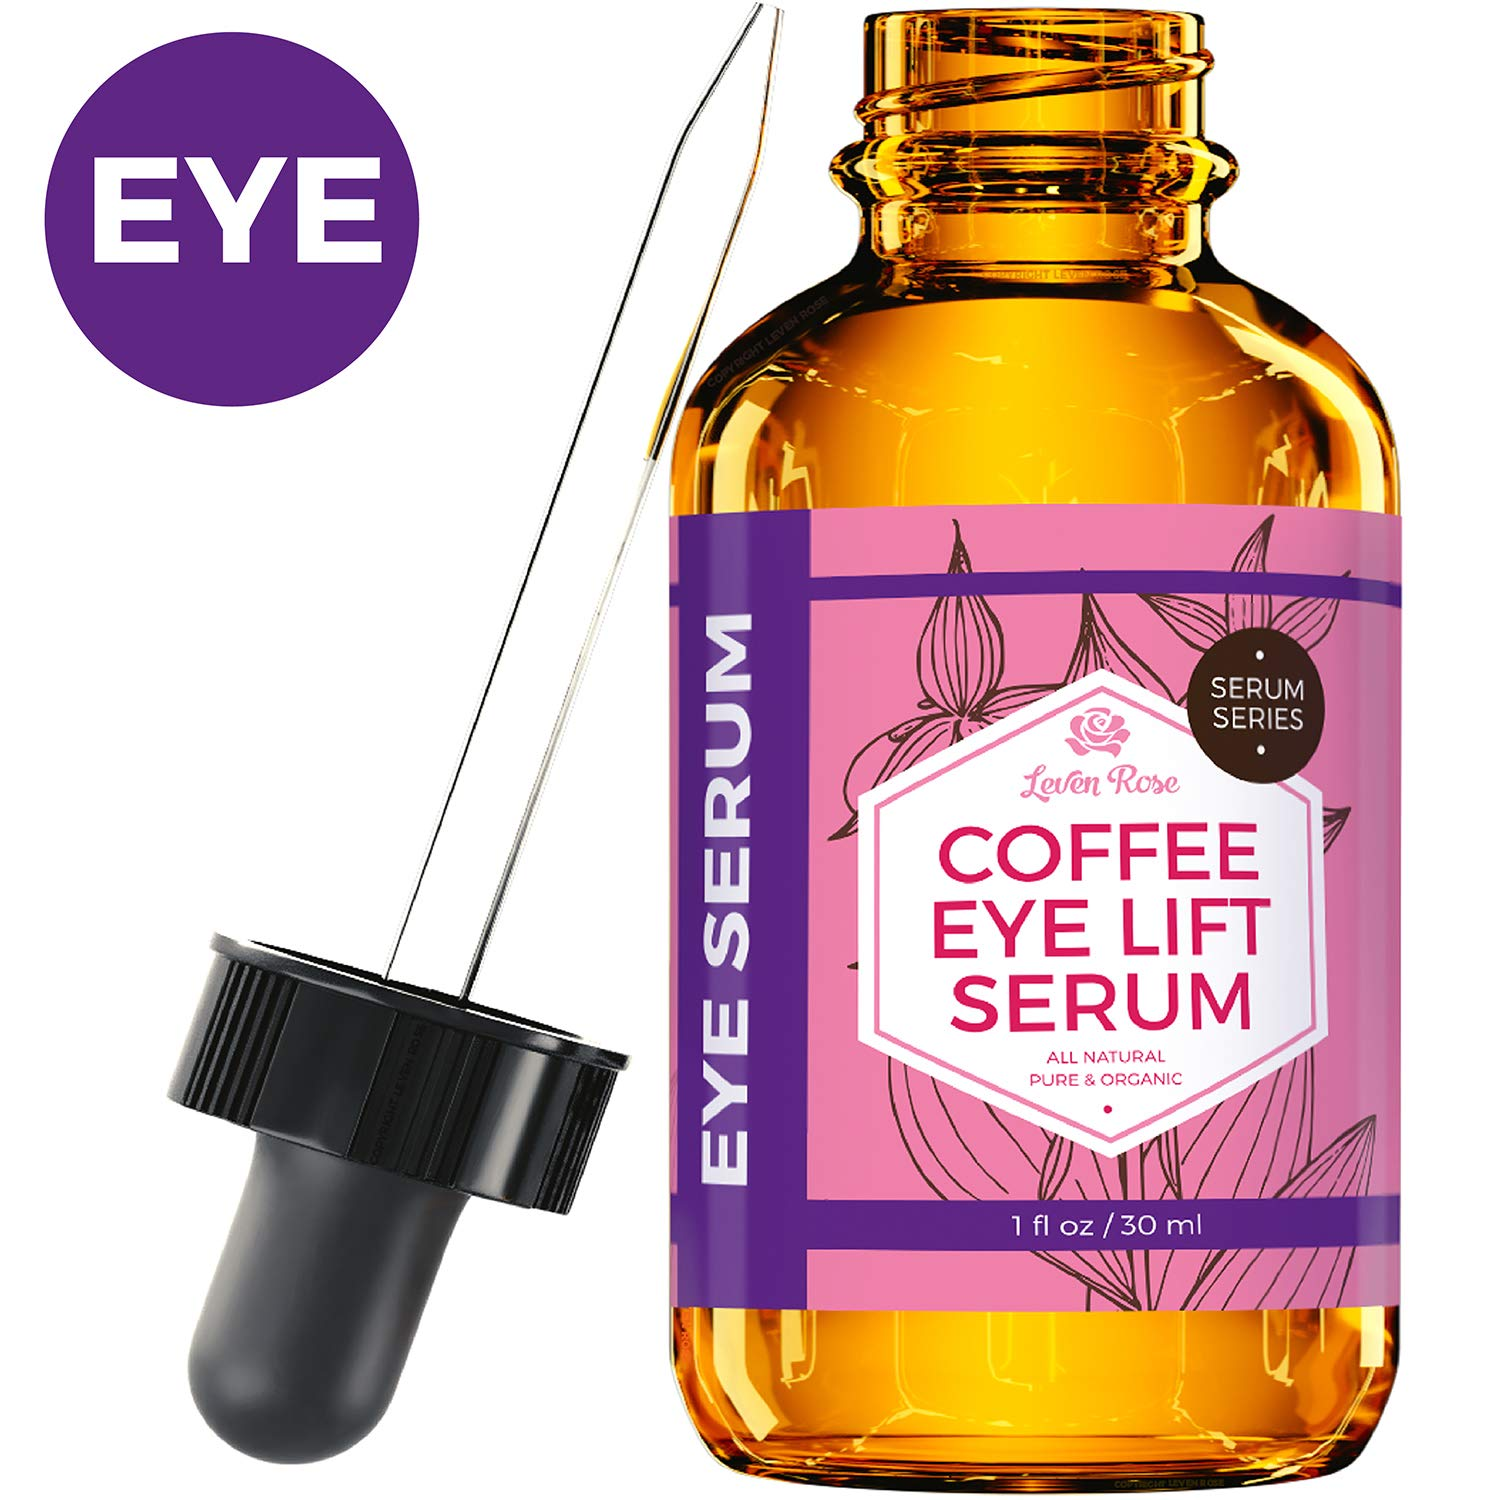 Coffee Eye Lift Serum by Leven Rose Pure, Organic, Natural Reduces Puffiness, Anti Aging, Brightens Tired Eyes 1 oz by Leven Rose